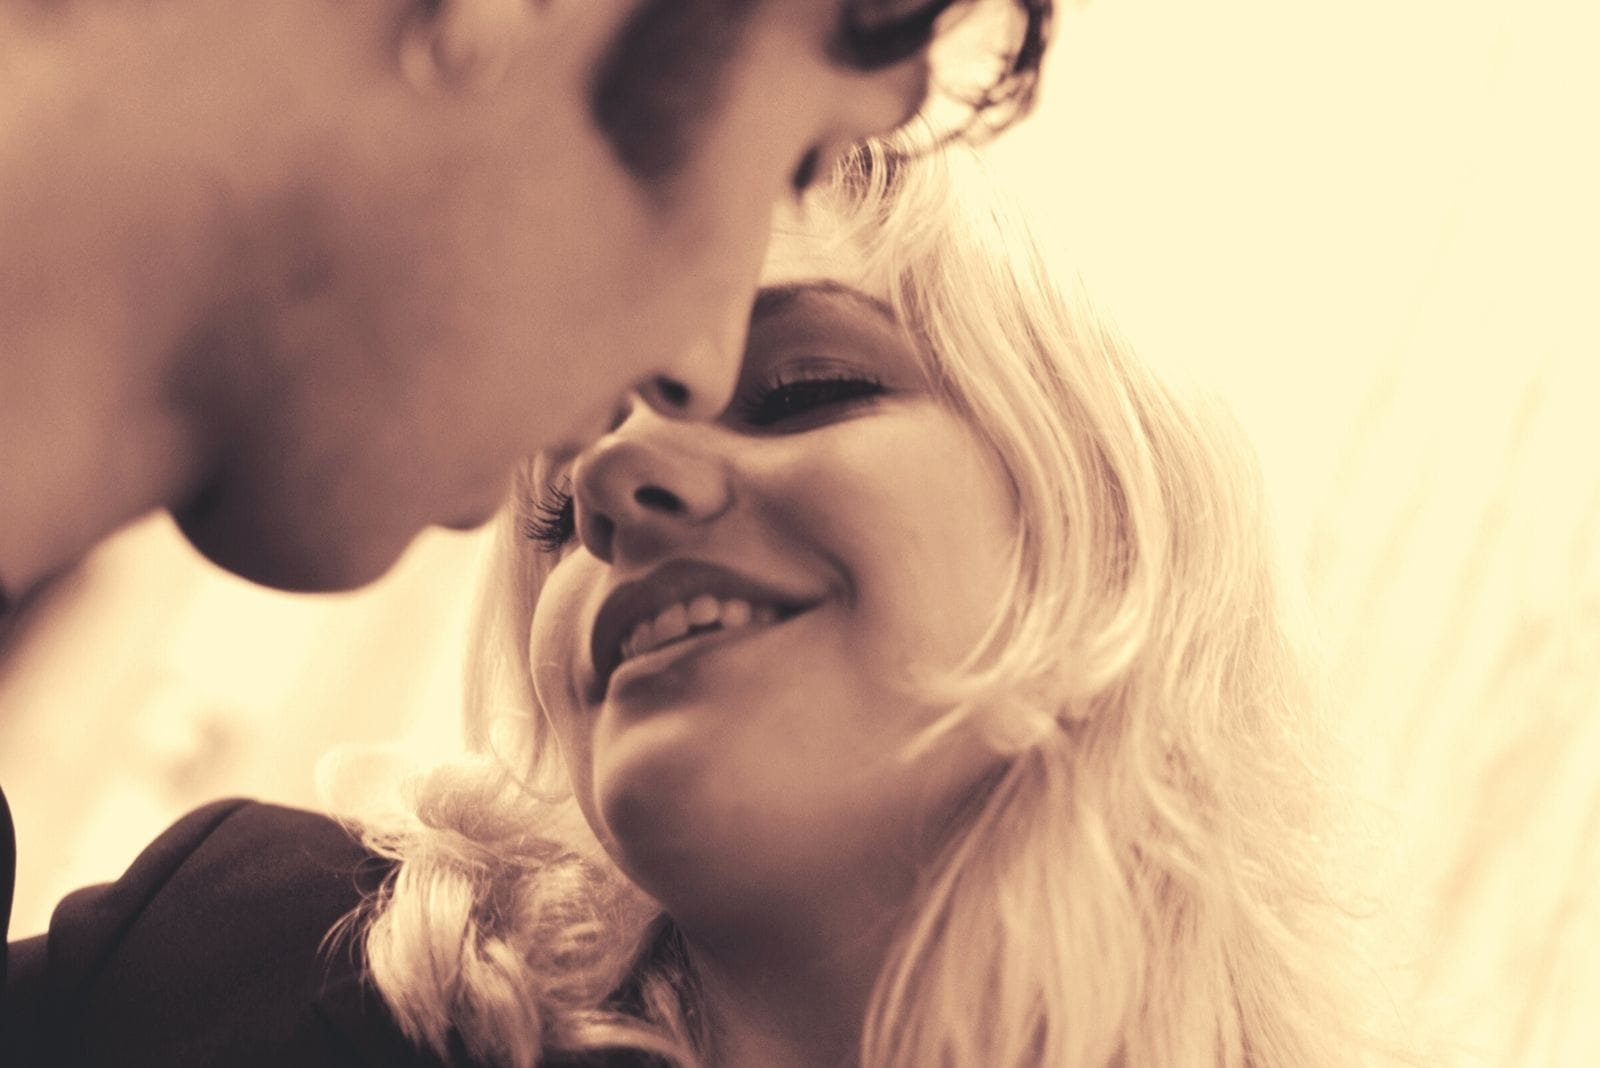 kissing couple smiling in their 20-30s with photography in grayscale theme their